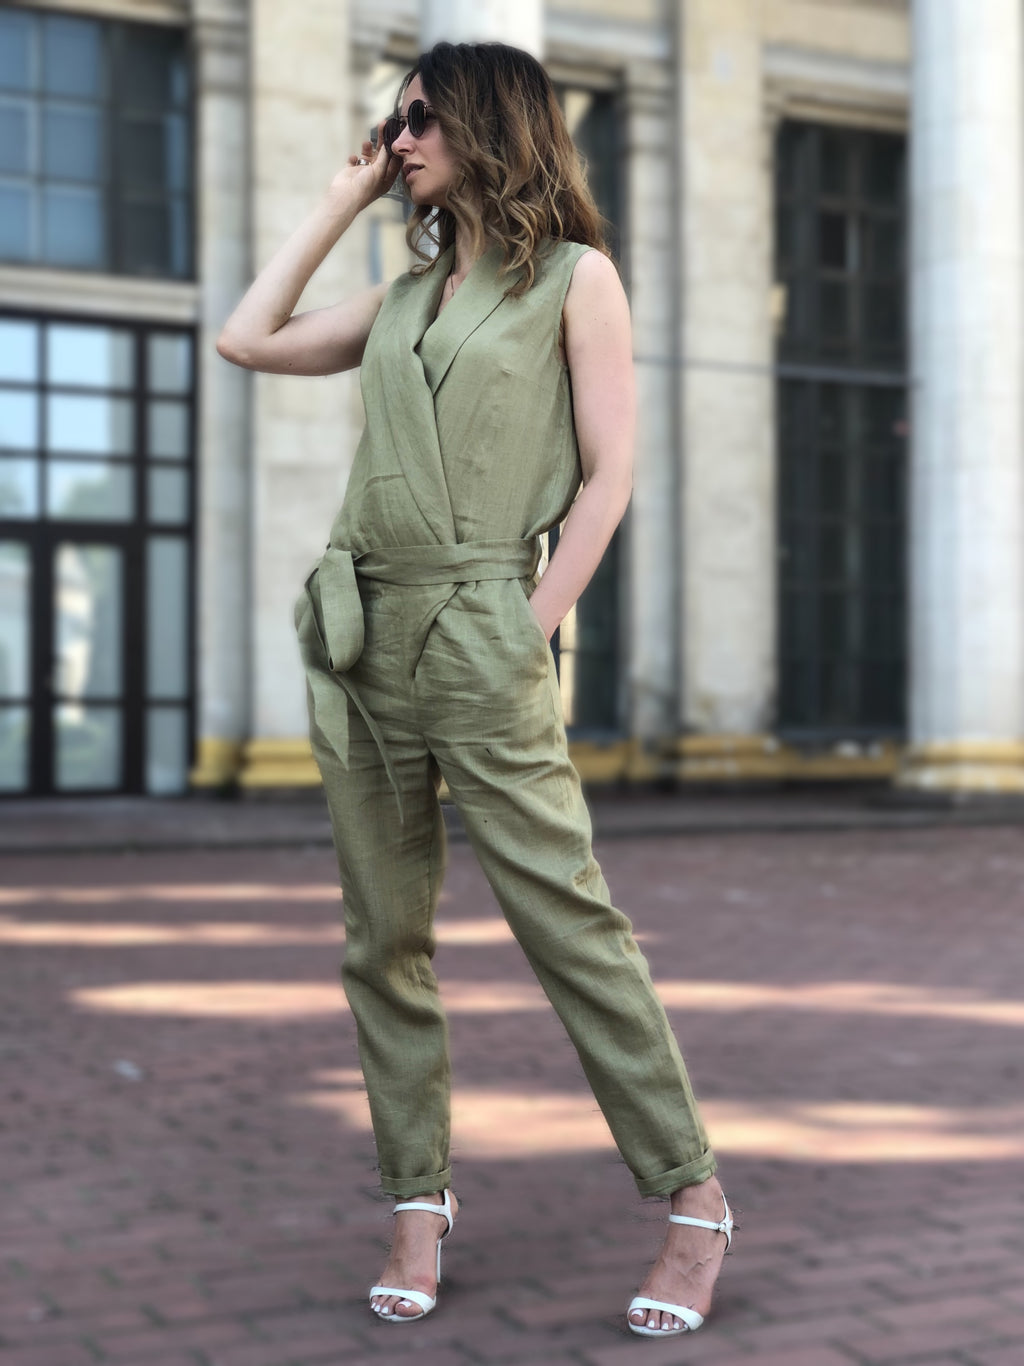 Casual Linen Jumpsuit - Olive Linen Romper with Belt - Loose Linen Overalls